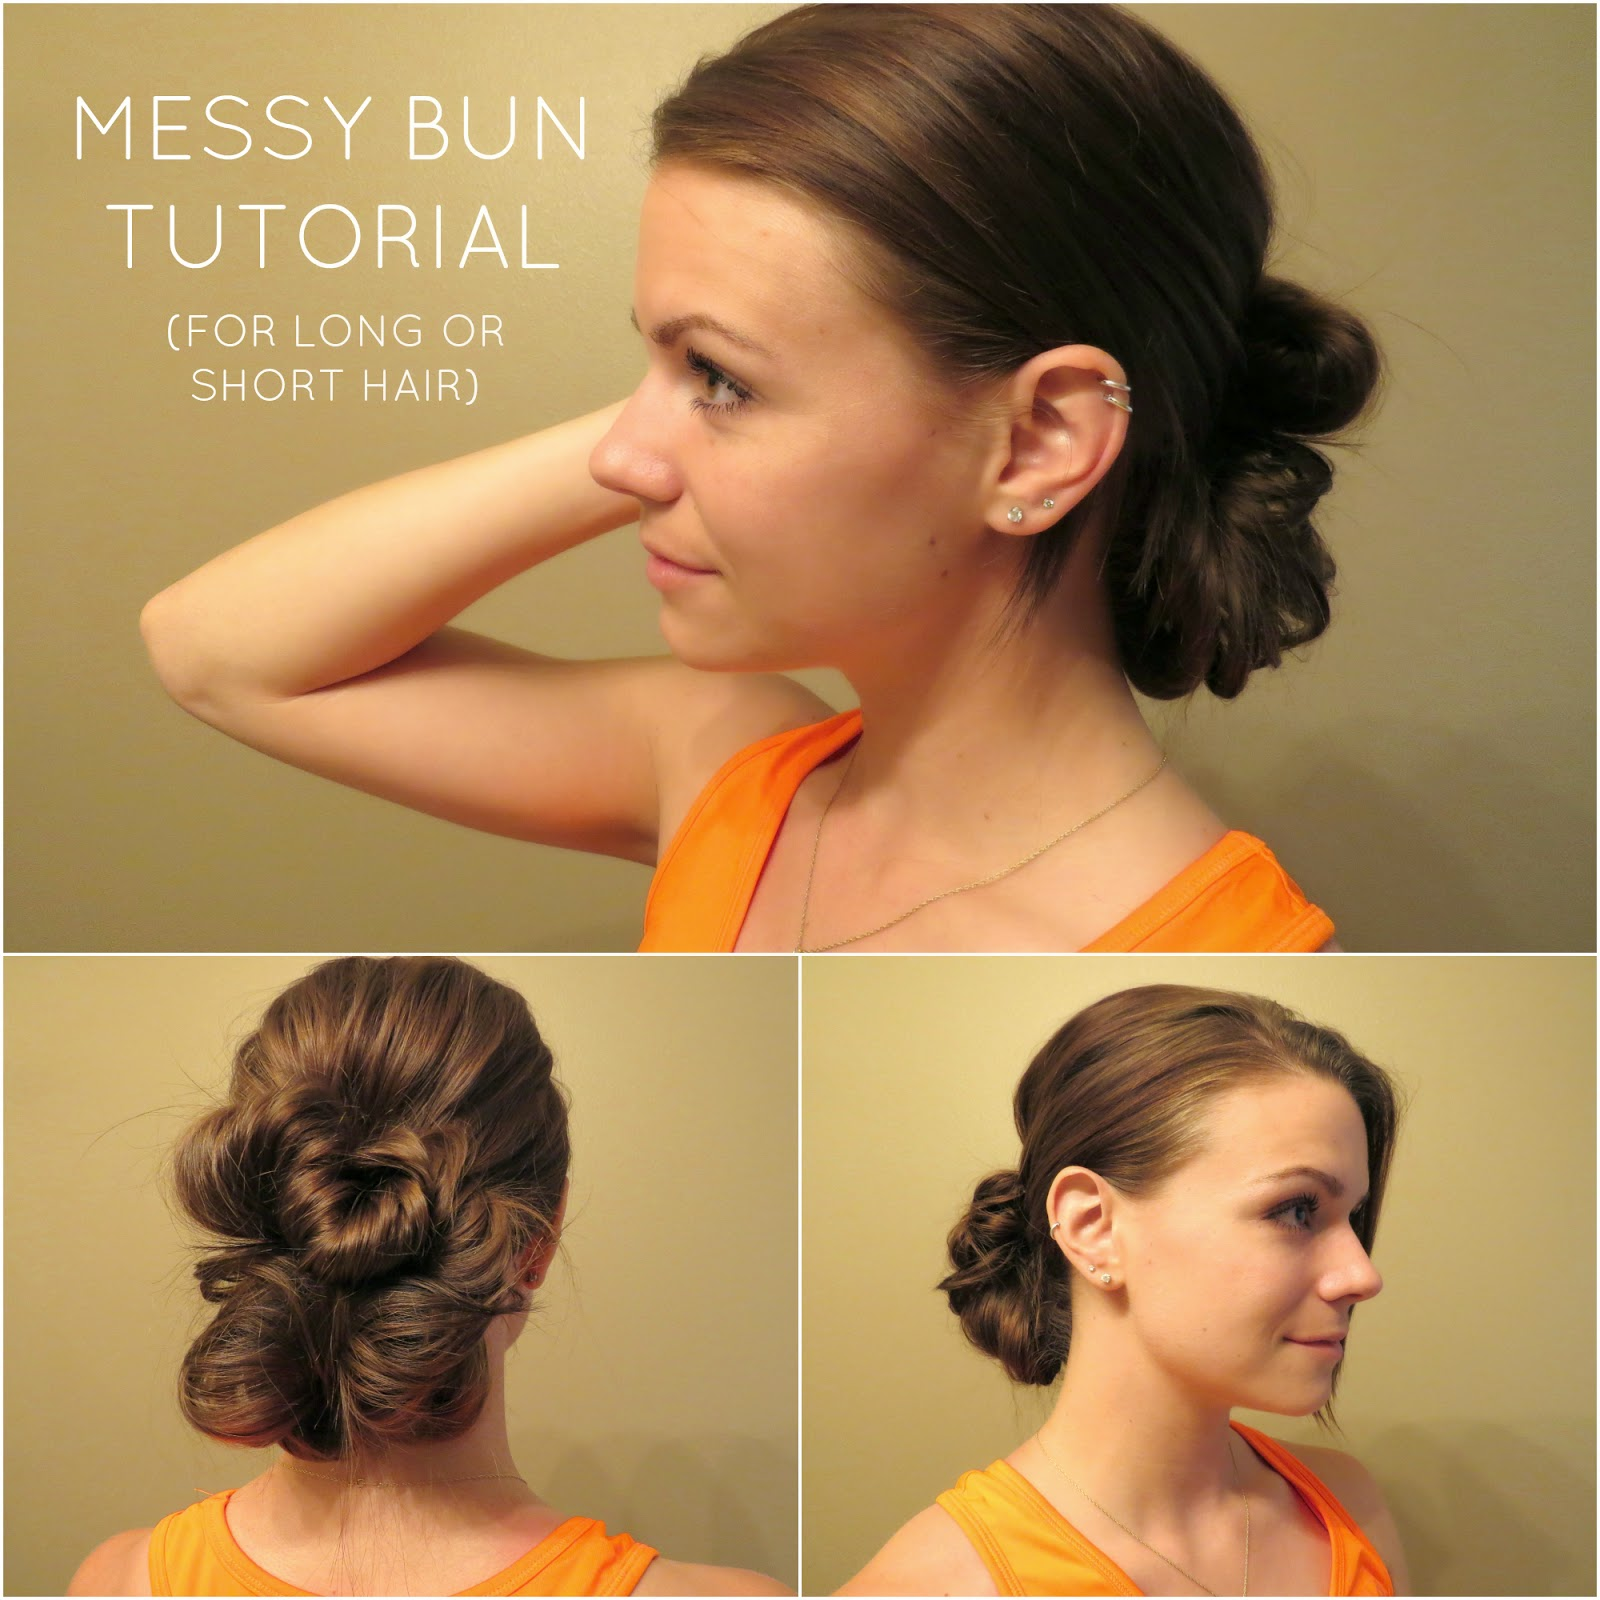 Bye Bye Beehive │ A Hairstyle Blog Messy Bun Tutorial for Long or